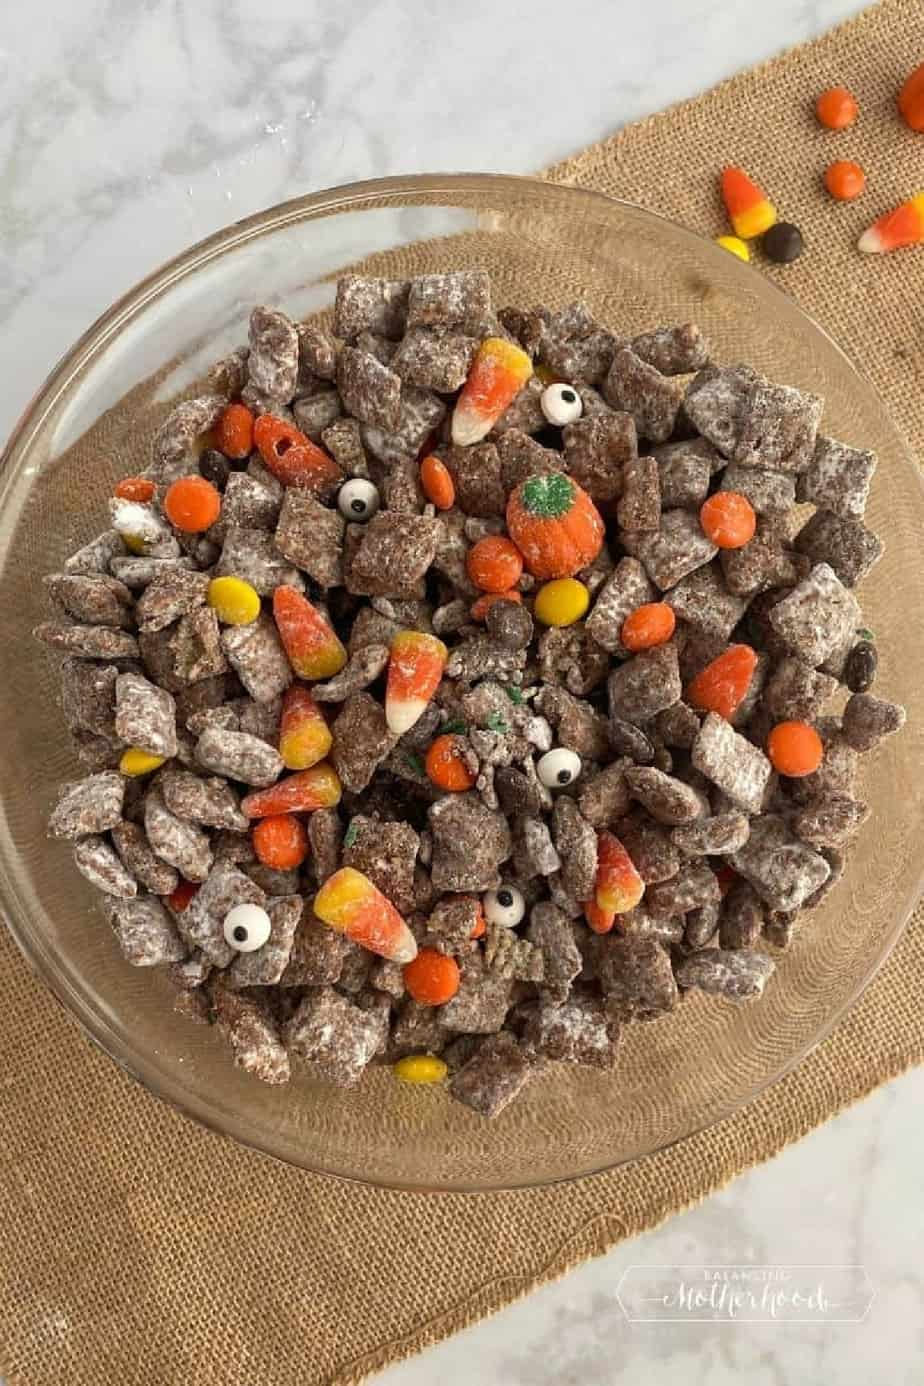 A large bowl from overhead fully of chocolate peanut butter covered cereal also known as muddy buddies, candy corn and candy pumpkins